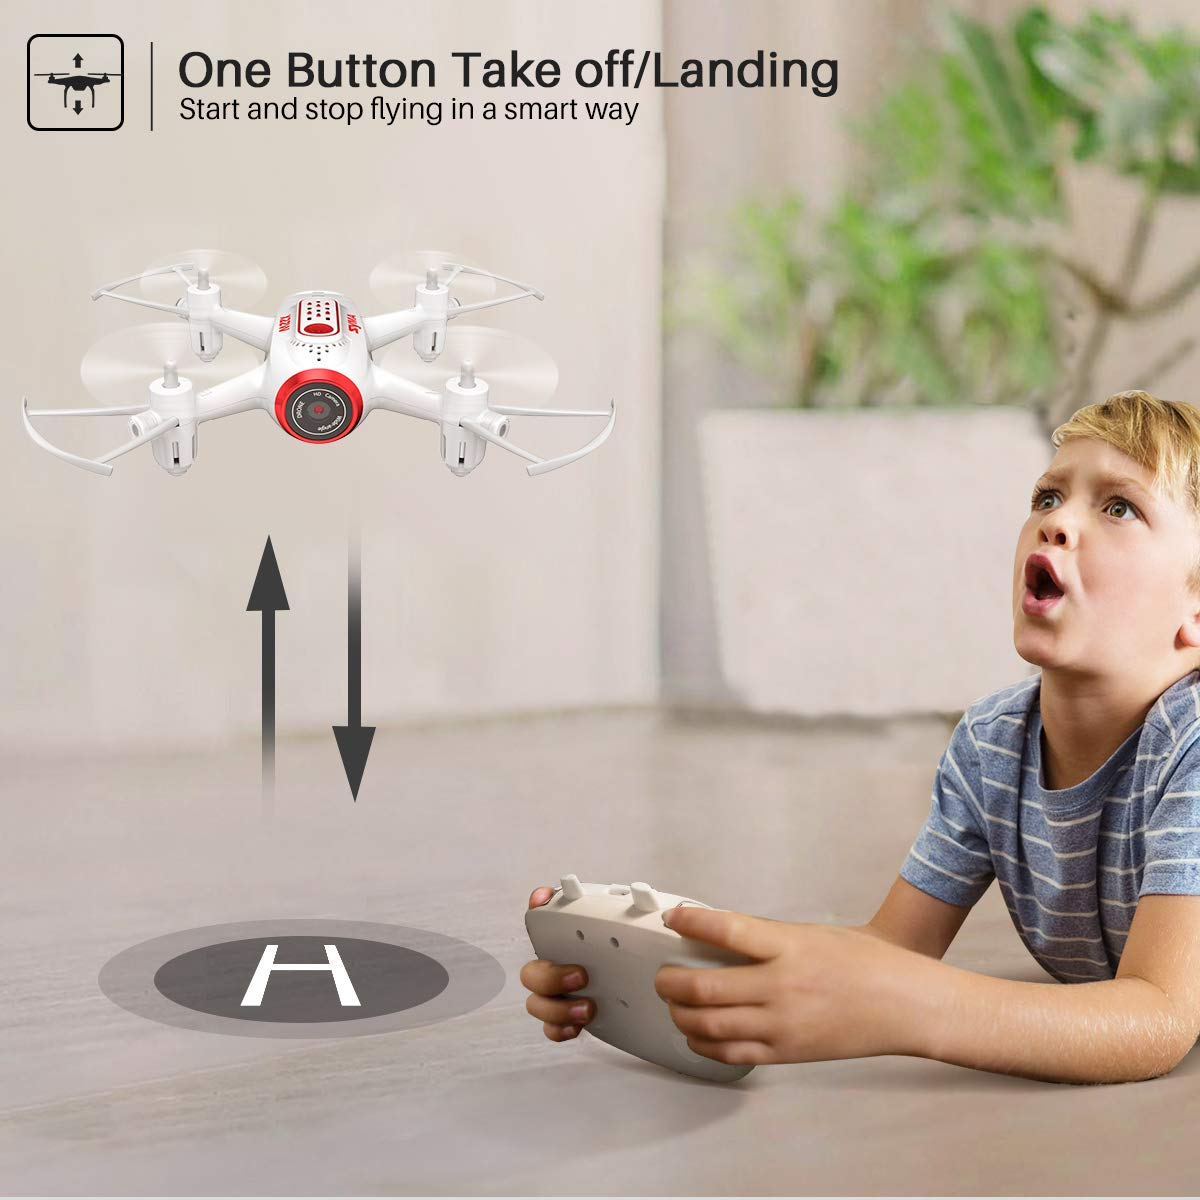 SYMA X22W One Button take off and landing